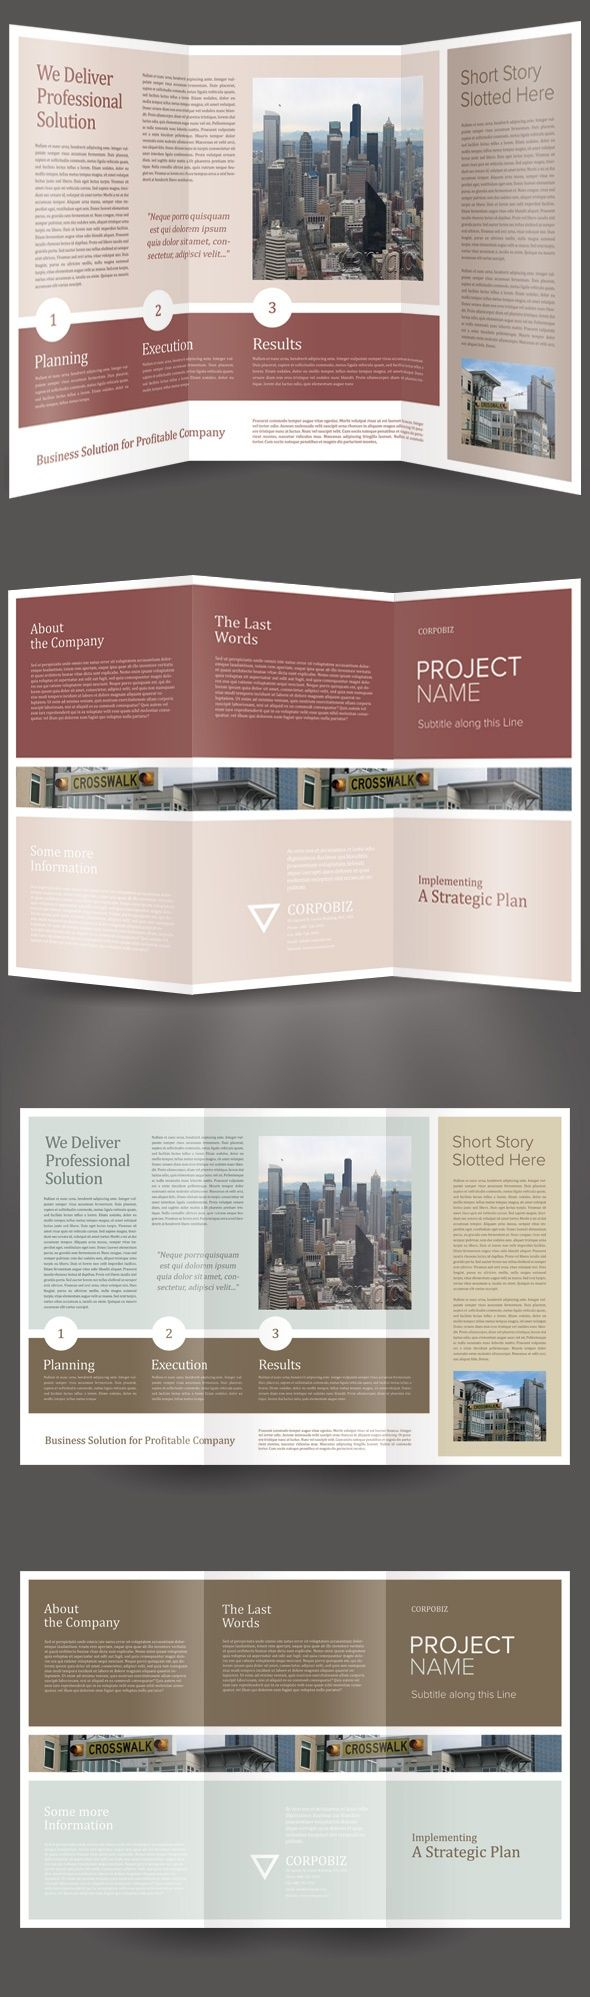 Best Private Banking Brochure Images On   Private